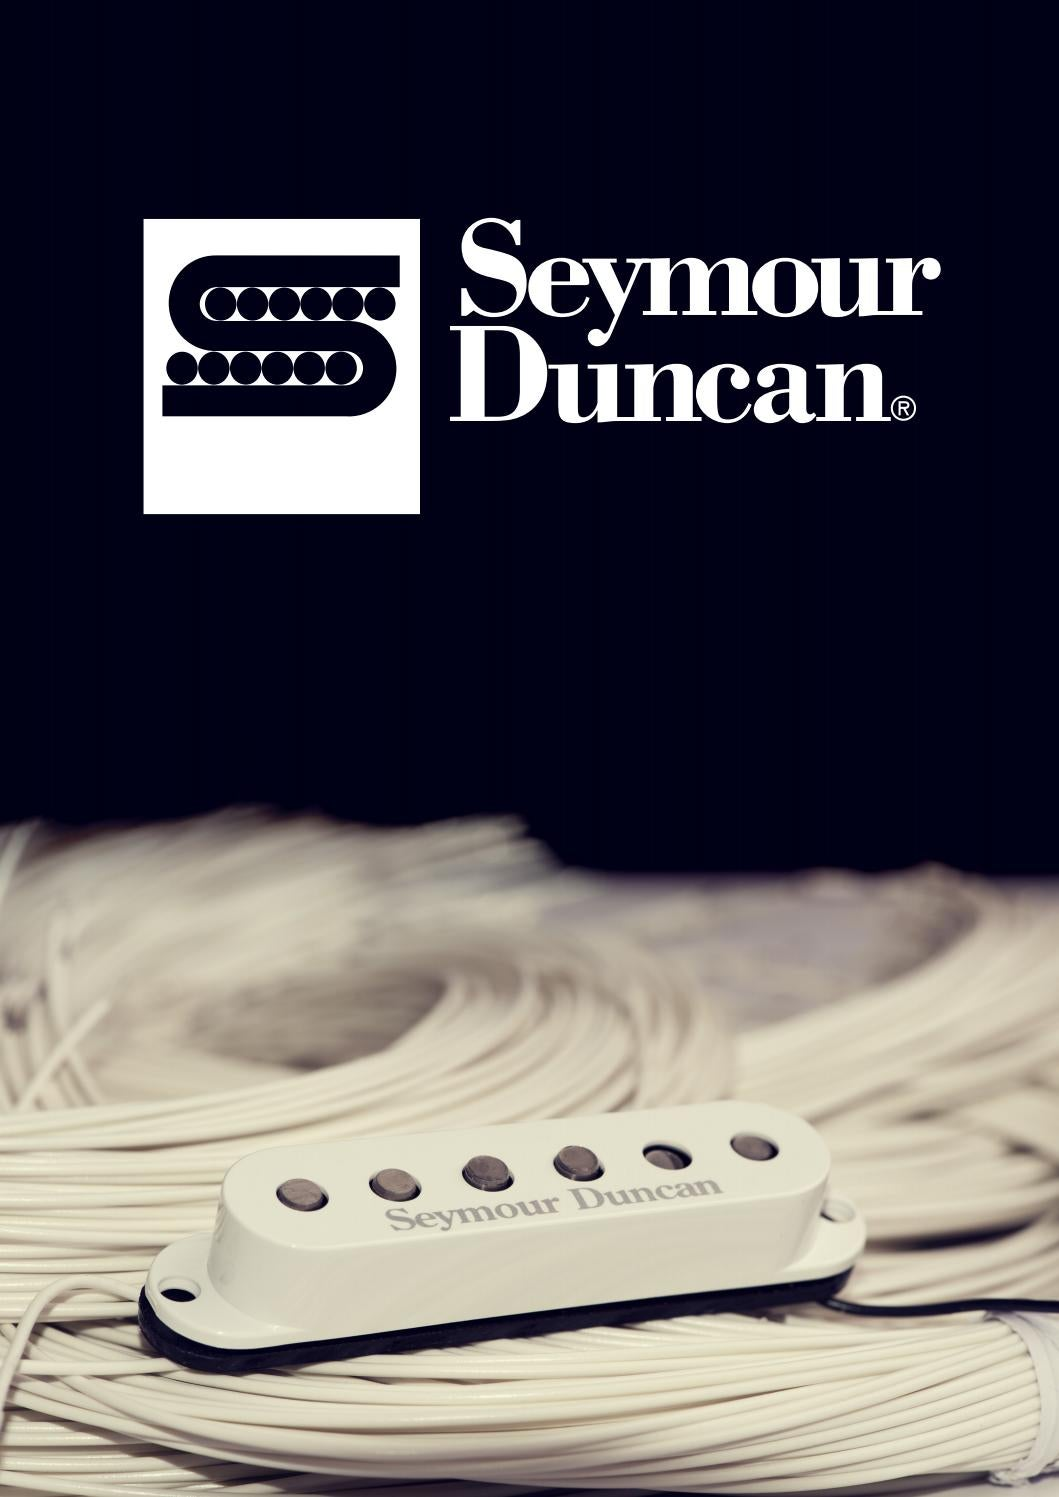 Seymour Duncan 2016 Uk Brochure By Rosetti Ltd Issuu Whole Lotta Humbucker Wiring Diagram